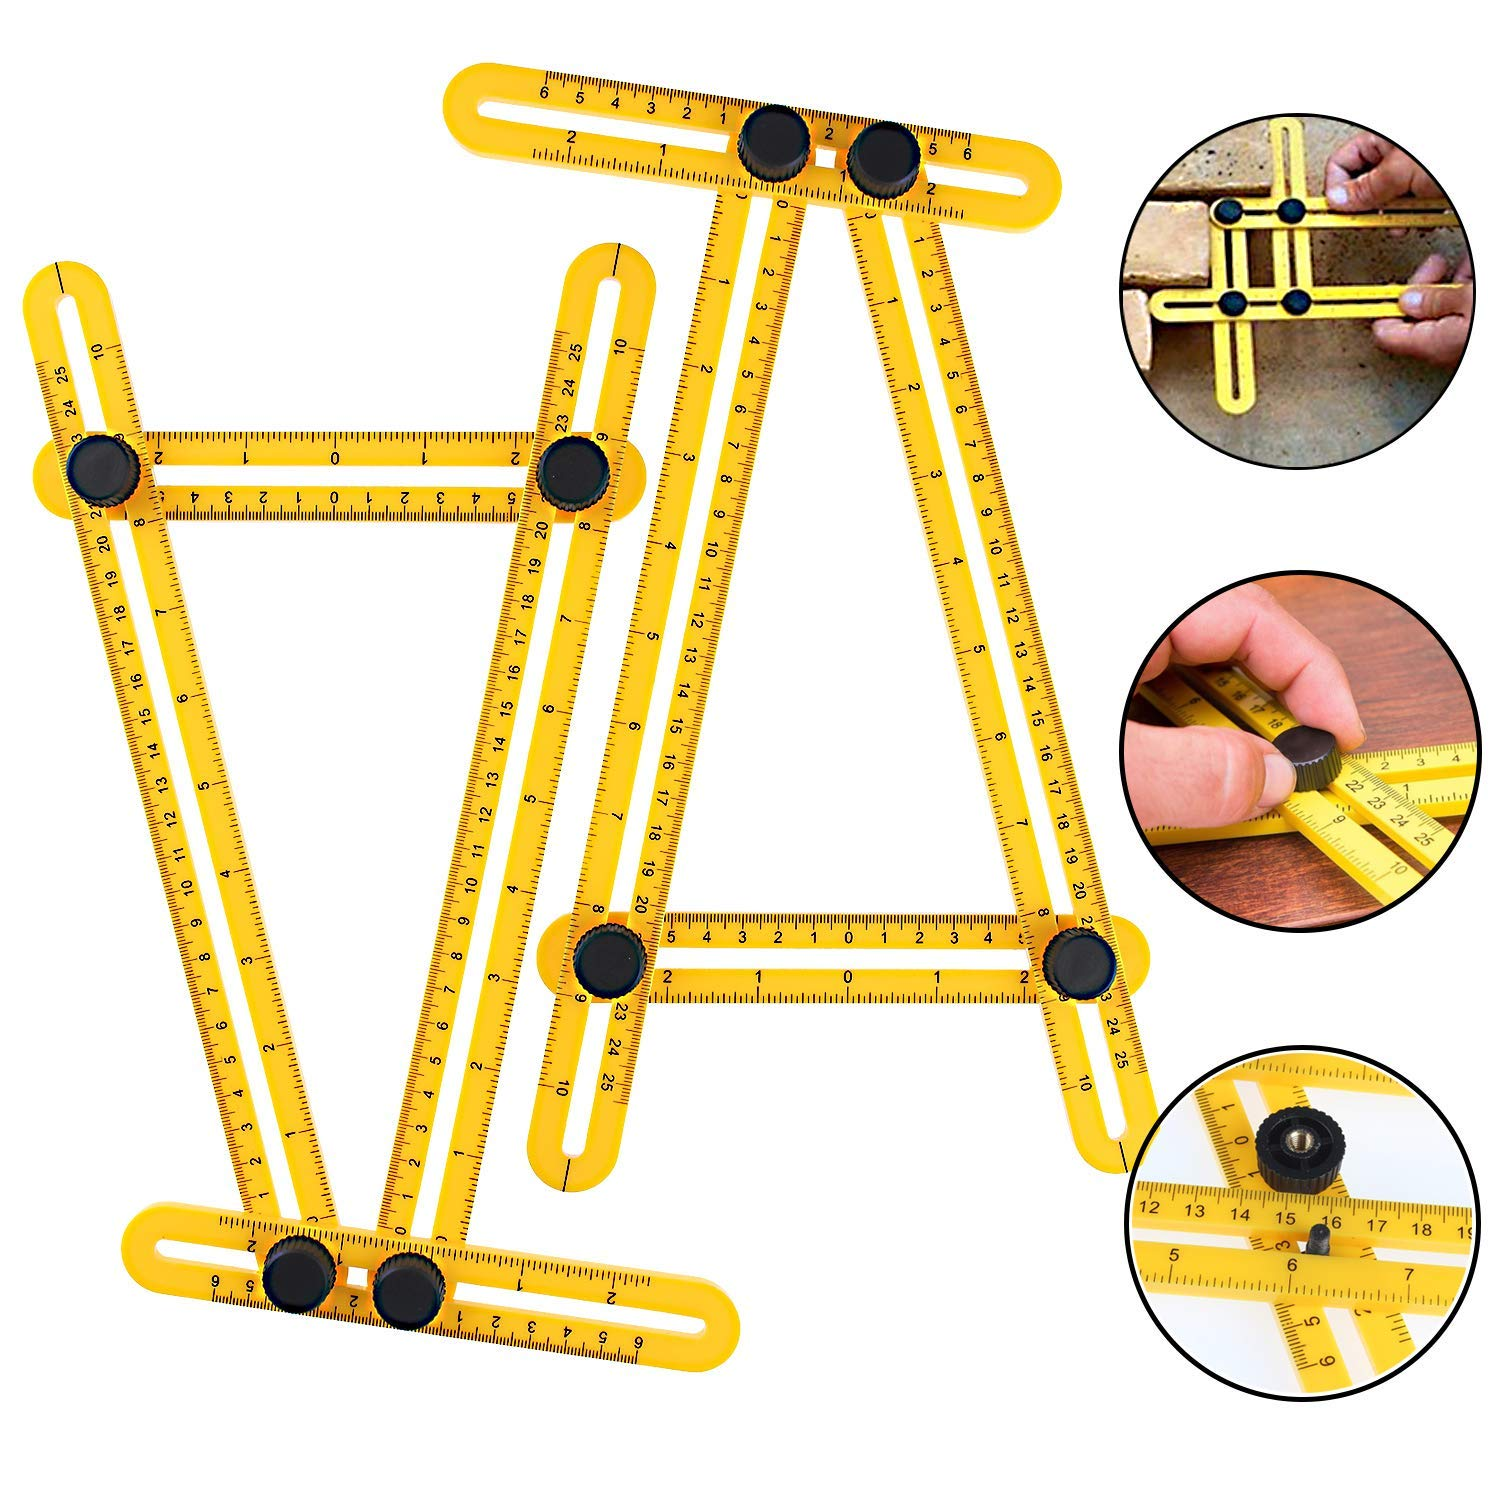 Construction Workers XGCMY Multi-Angle Measuring Ruler Four-Fold Ruler Adjustable for All Angles Shapes Ideal Yellow Measuring Tool Laser Etched Markings for Woodworking Crafters Carpenters or Engi